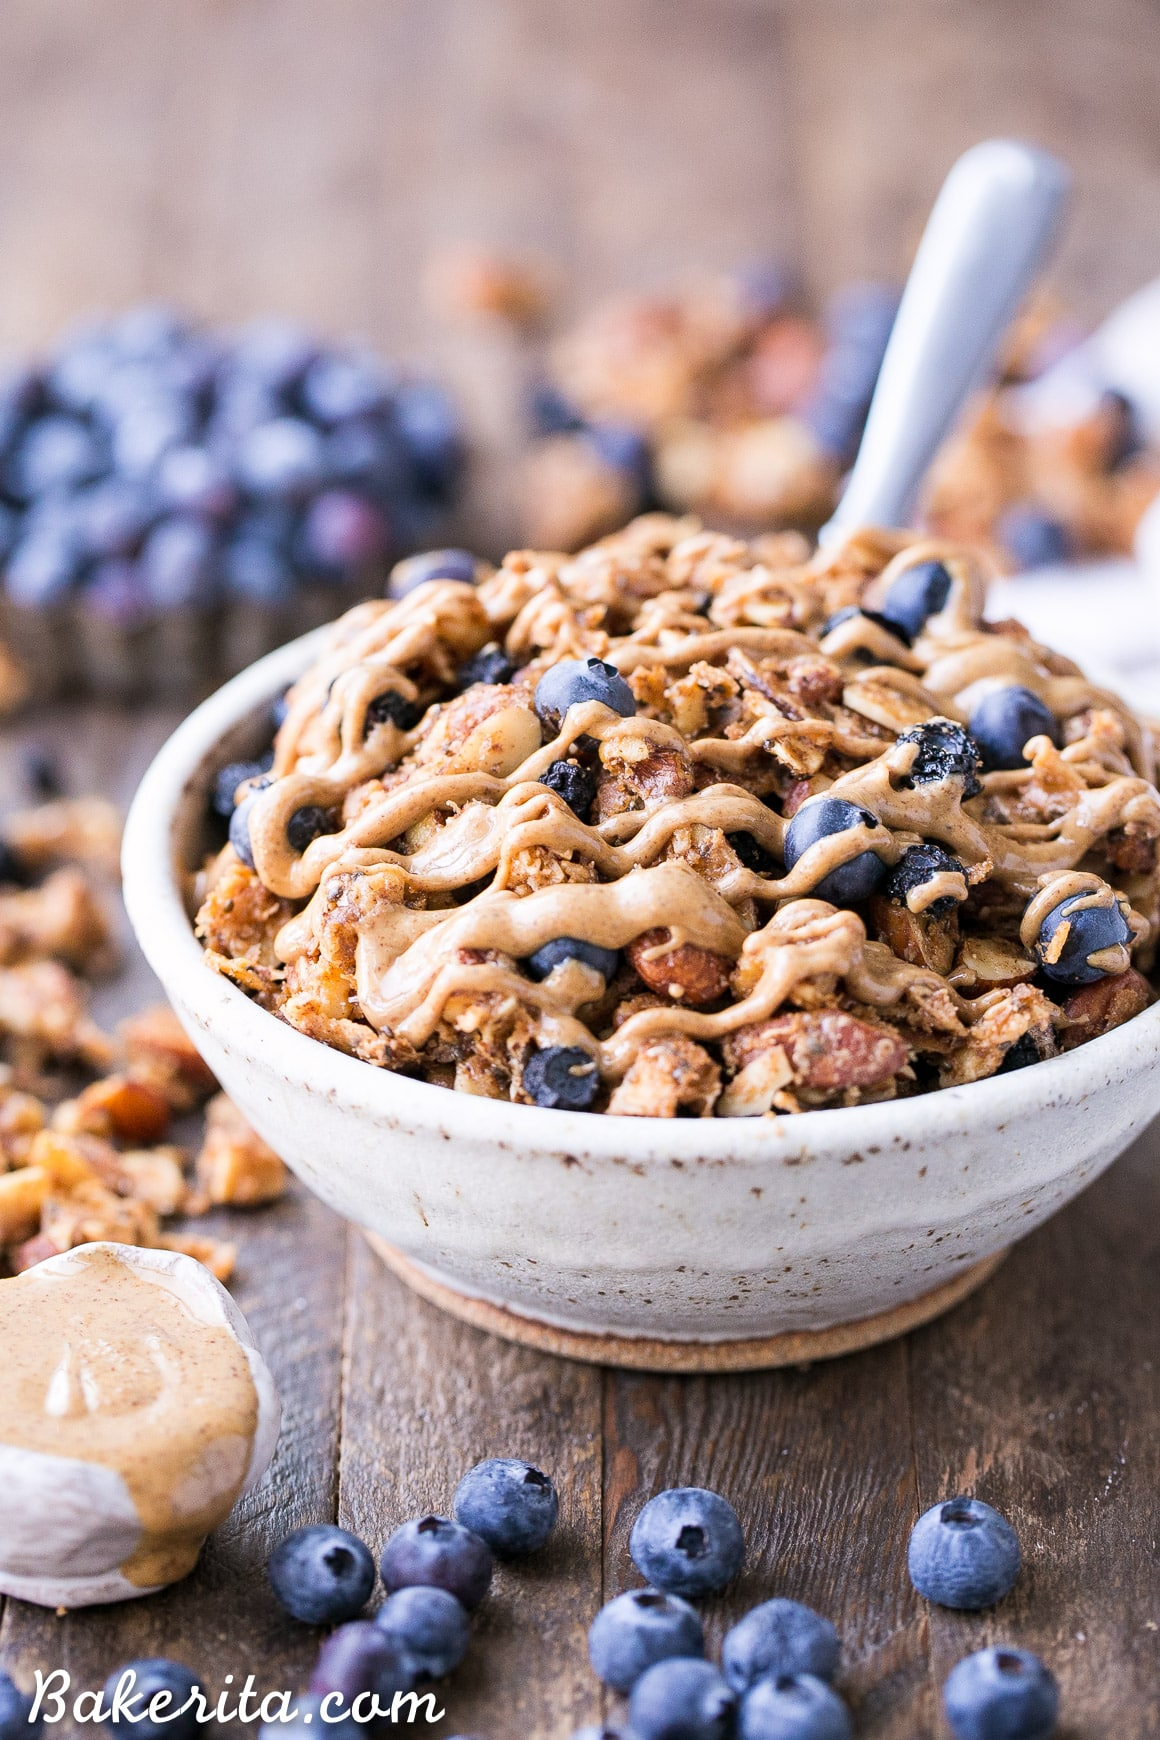 18 Irresistible Recipes for Homemade Granola: Blueberry Almond Butter Grain-free Granola